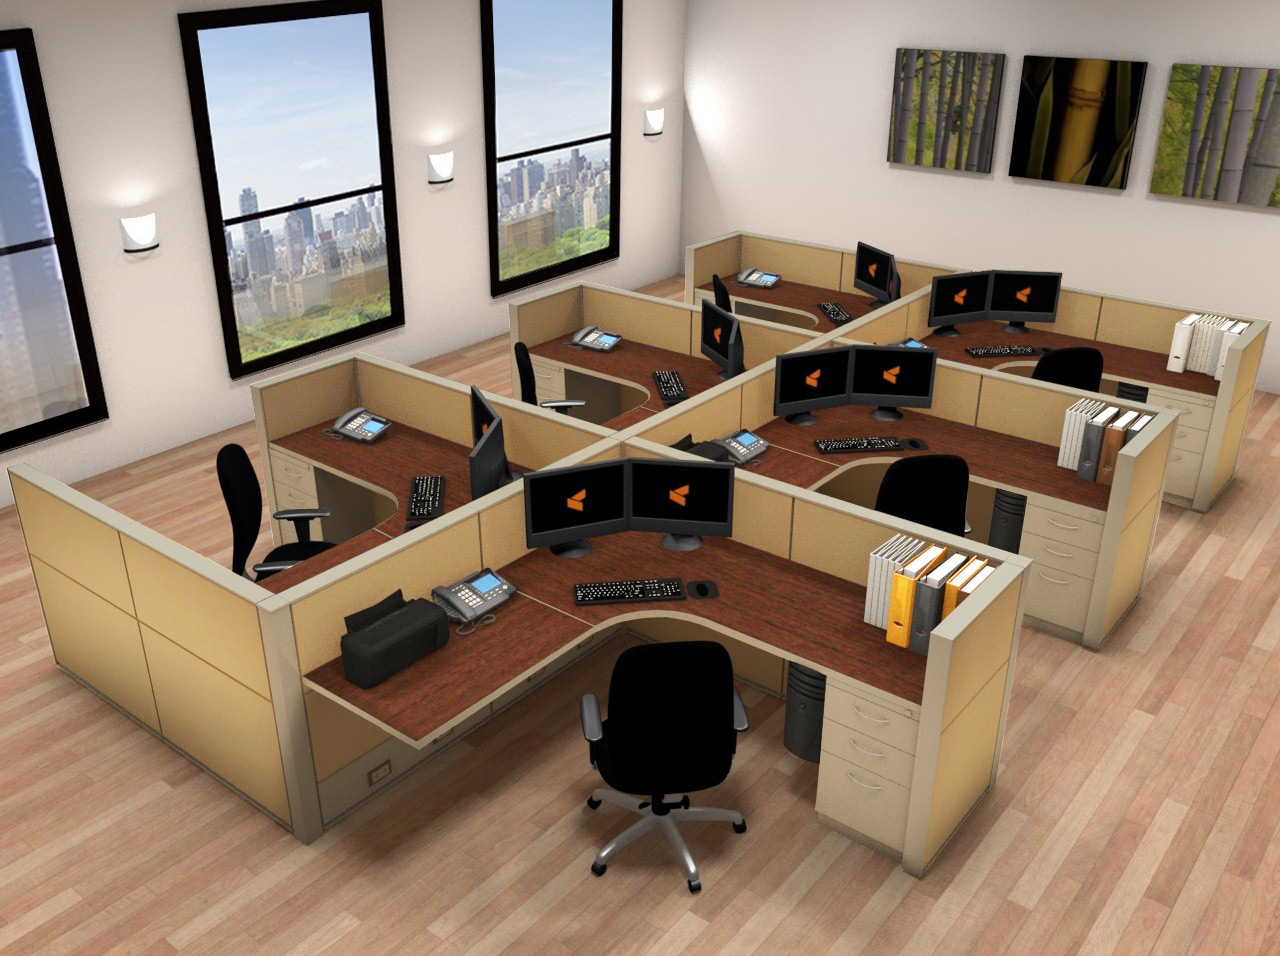 chair massage accessories hanging pepperfry office systems furniture - 6x6 cubicle workstations